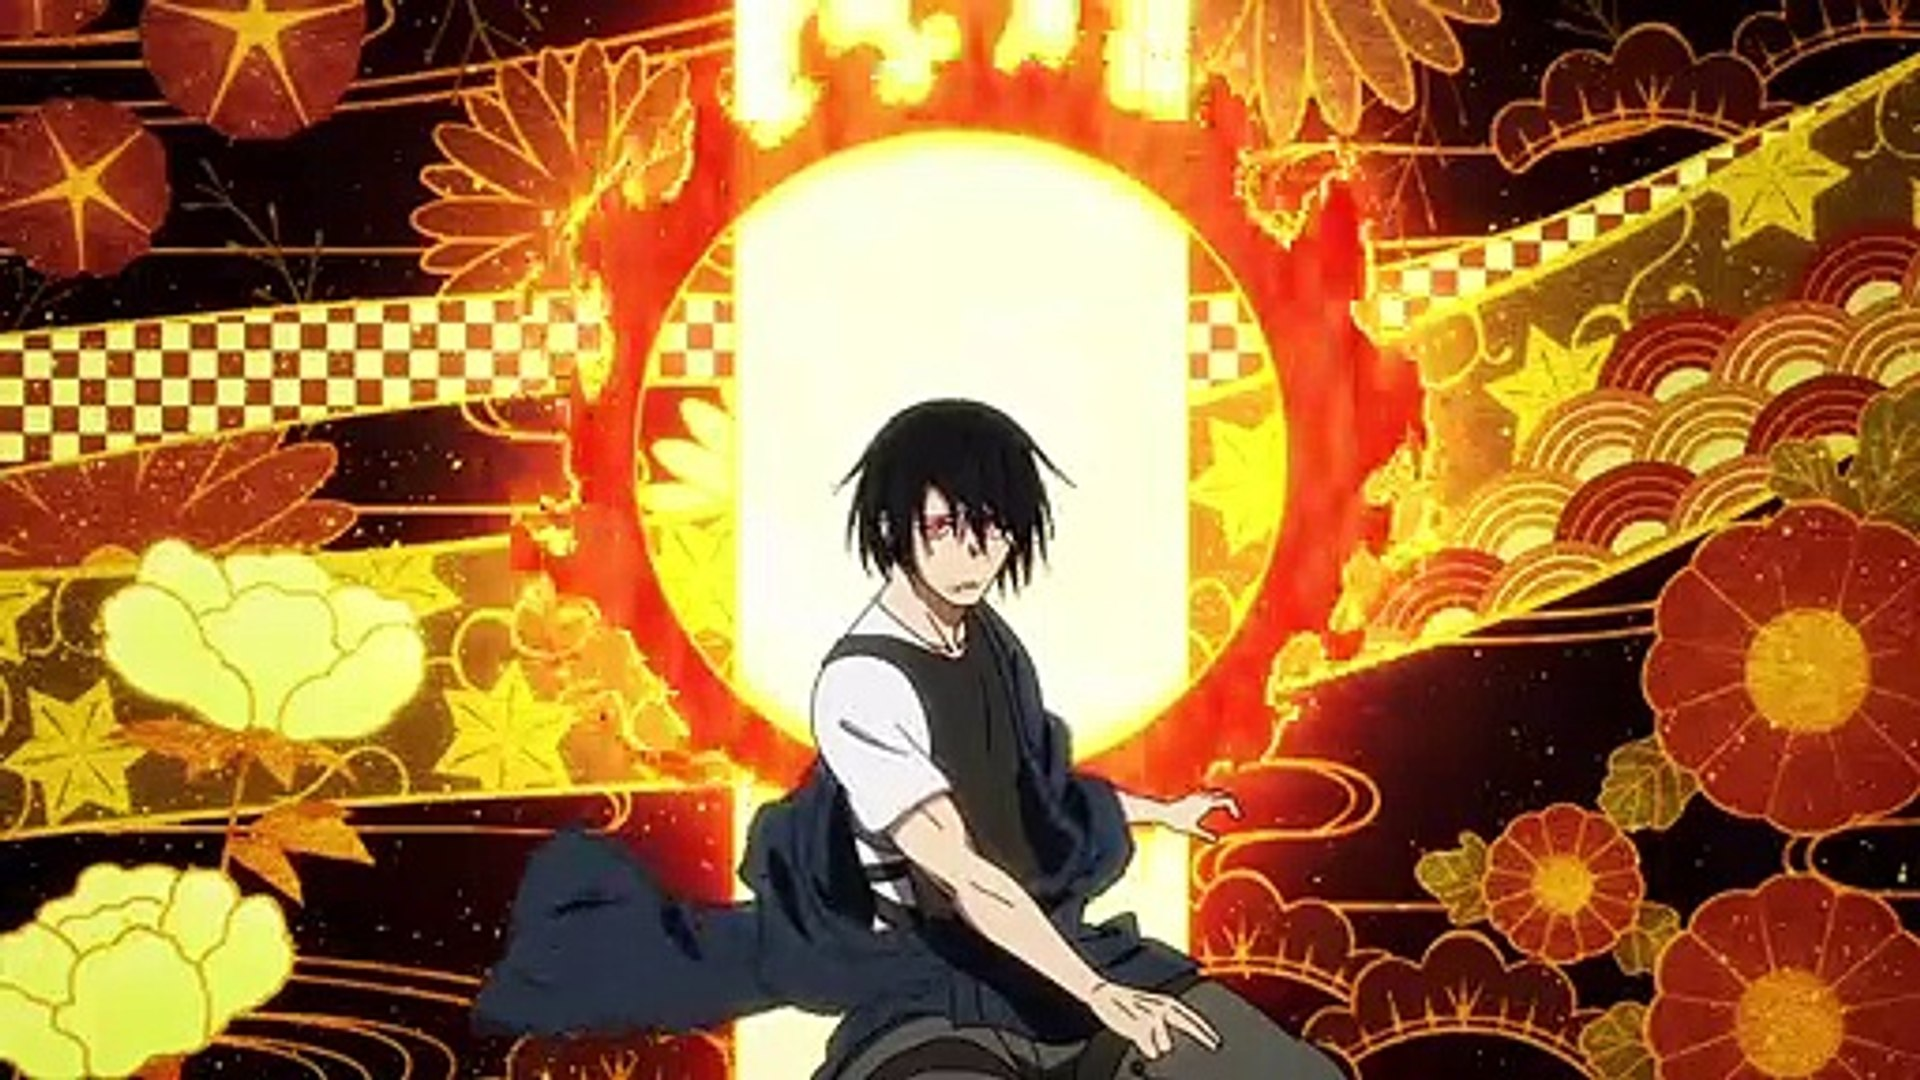 Fire Force Official Benimaru Vs Obi Fight English Dub Video Dailymotion Joker and benimaru descend into the holy sol temple. fire force official benimaru vs obi fight english dub